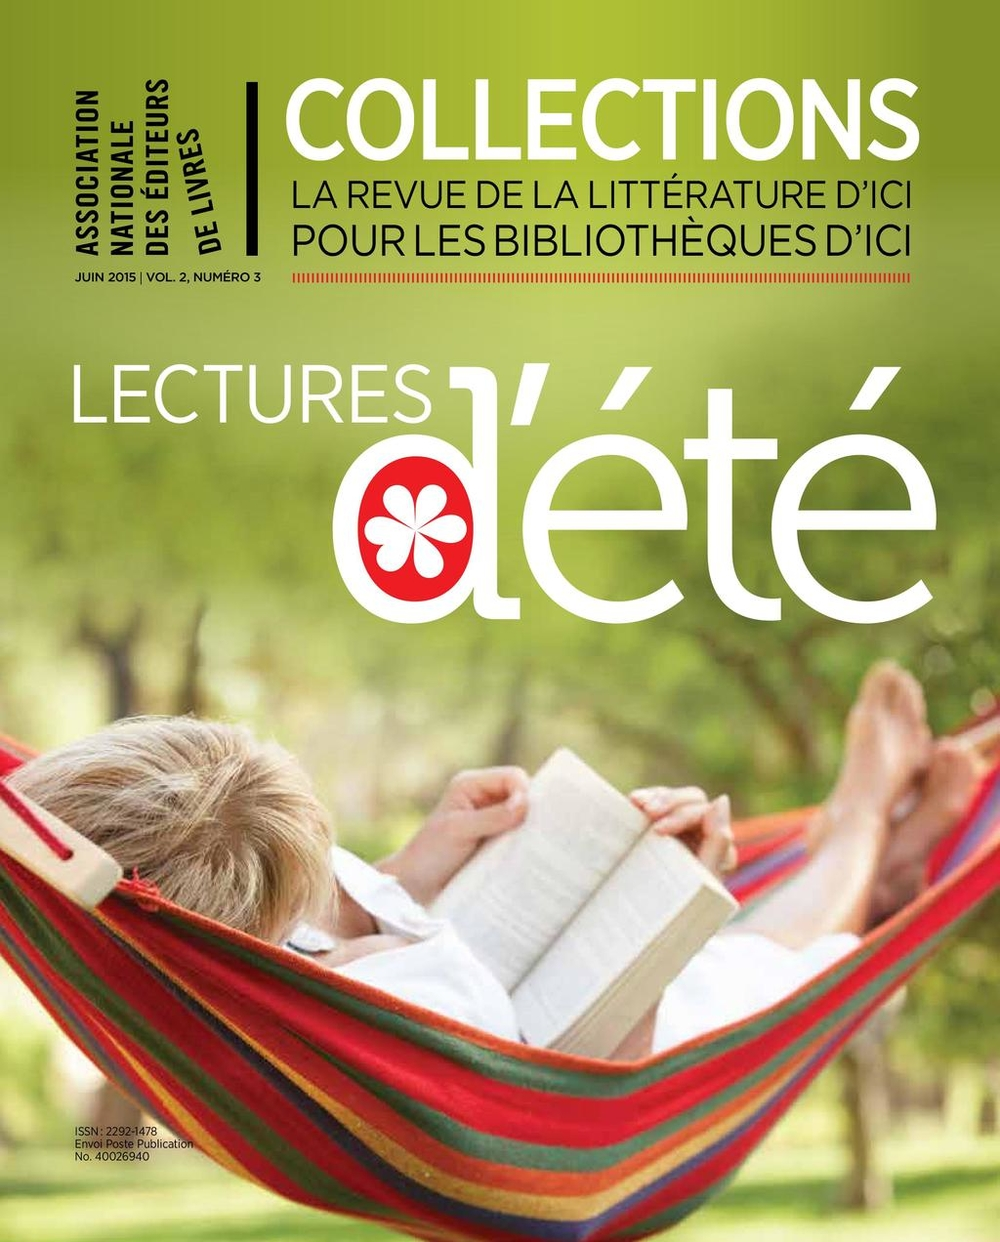 Collections Vol 2, No 3, Lectures d'été